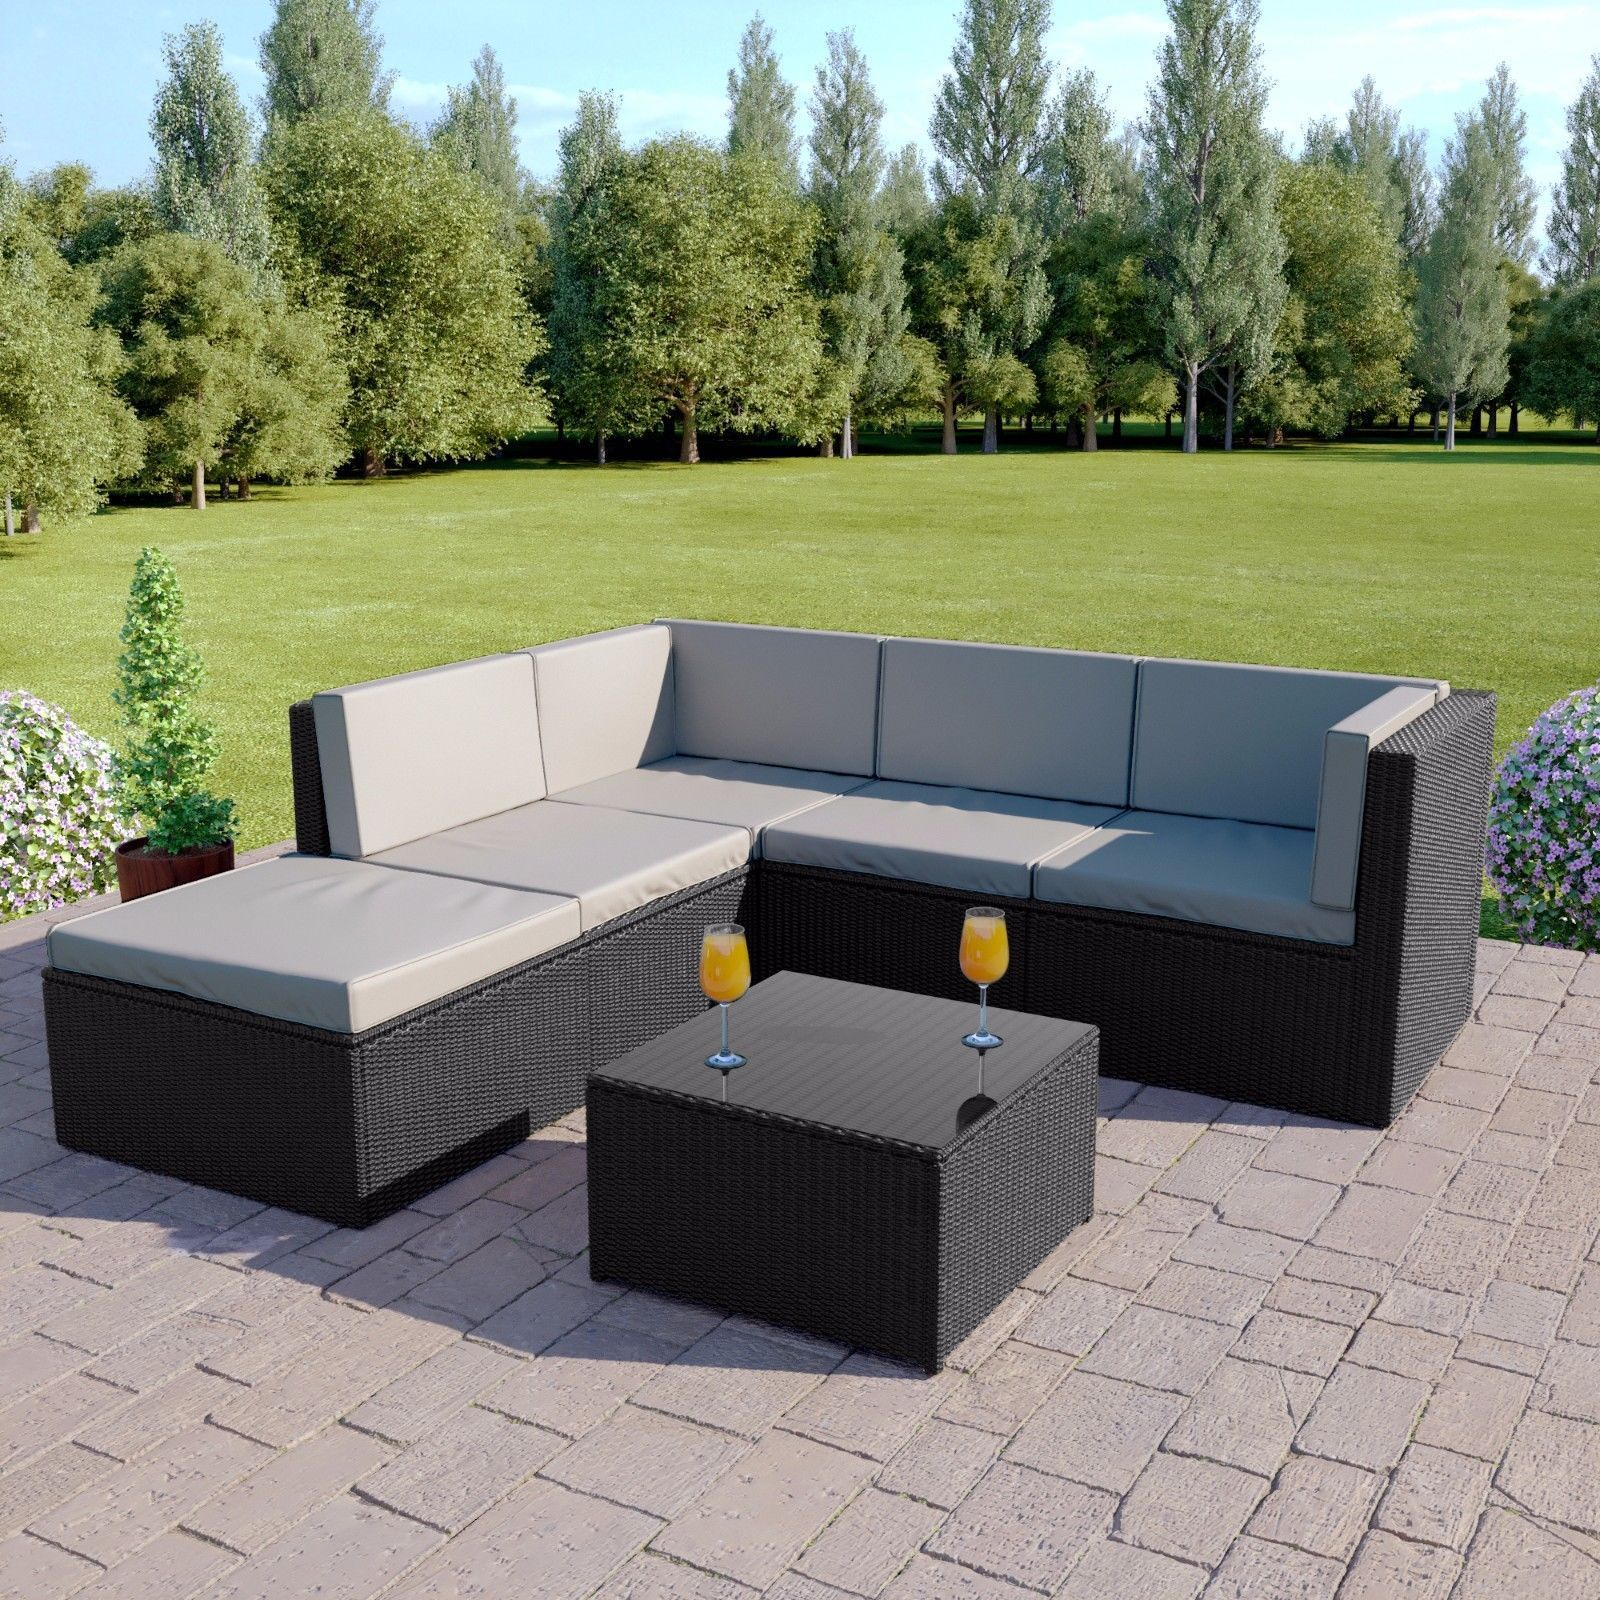 Details About Black Rattan Modular Corner Sofa Set Garden Furniture L Shape Free Cover In 2020 Corner Sofa With Cushions Rattan Corner Sofa Corner Sofa Set